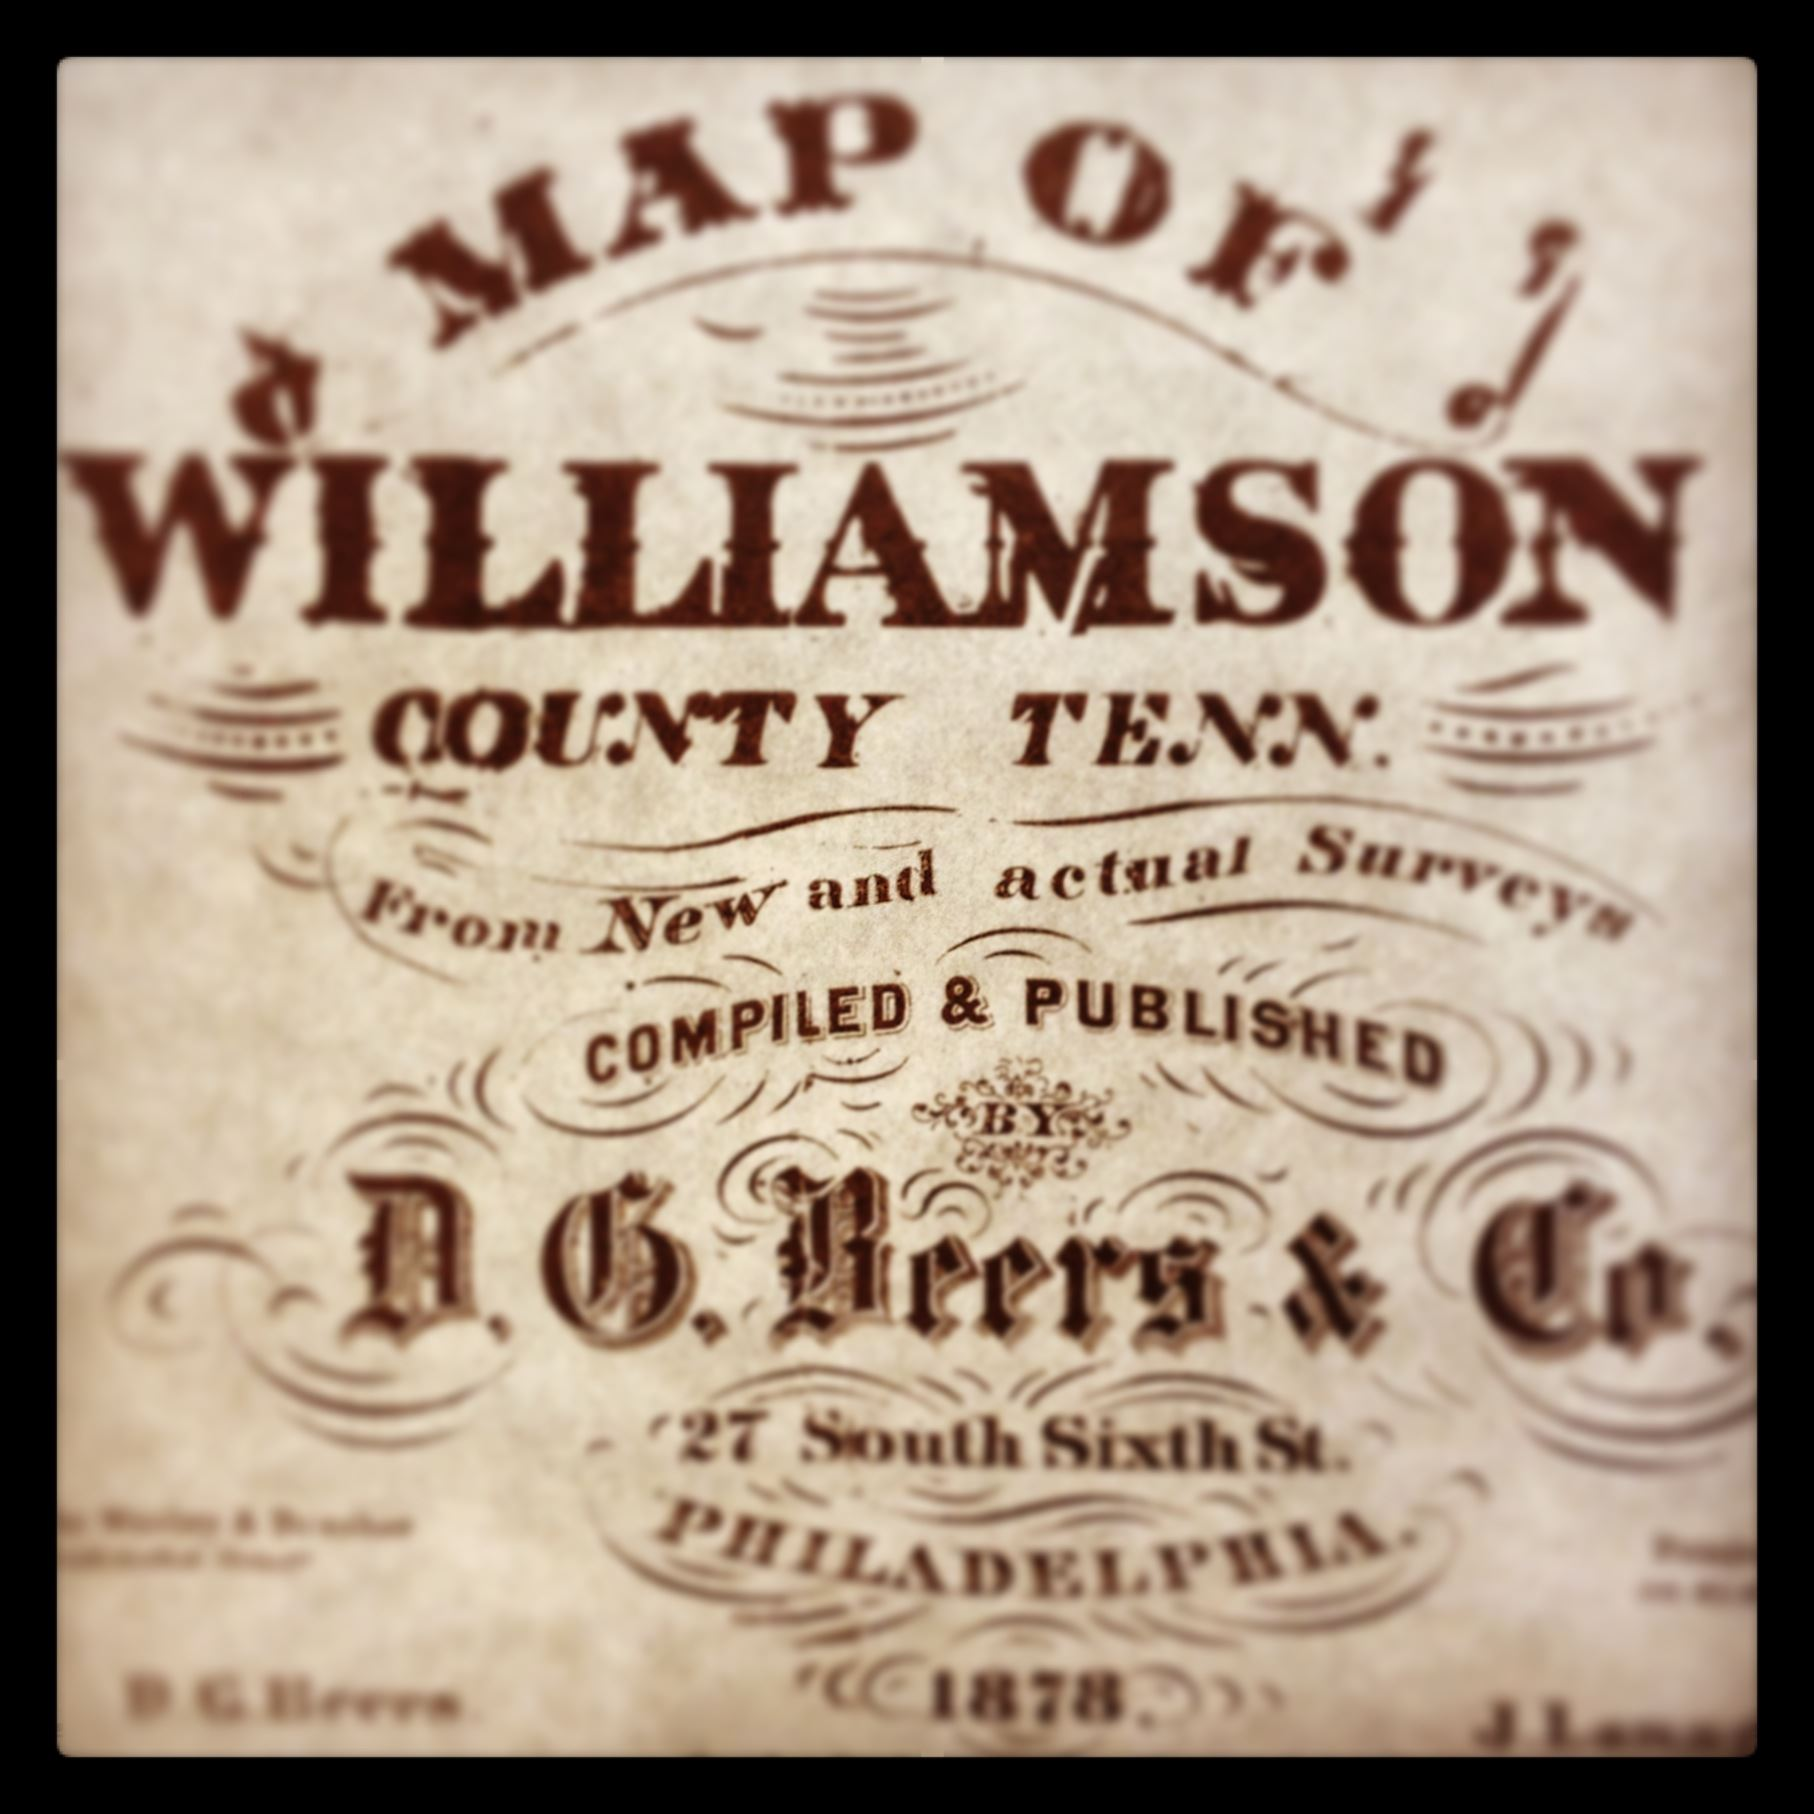 Williamson County Map-1878 Publisher Imprint